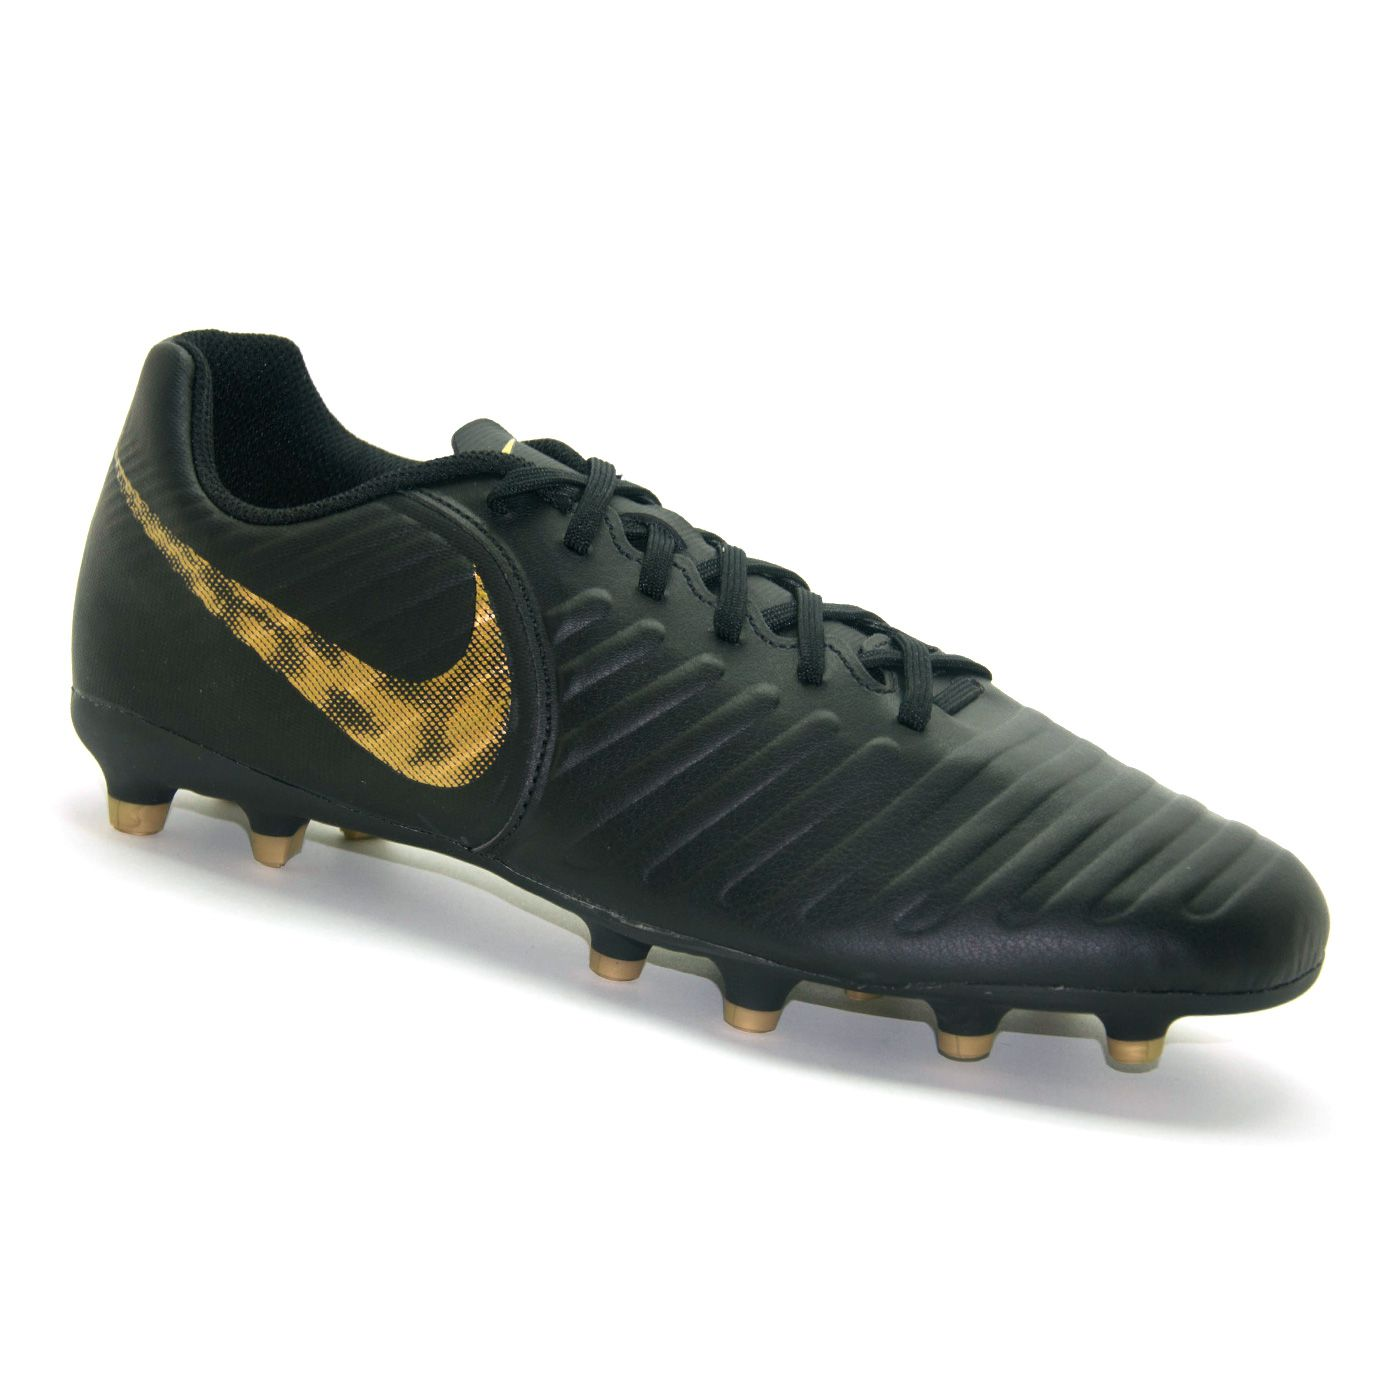 CHUTEIRA NIKE LEGEND 7 CLUB FG - AO2597